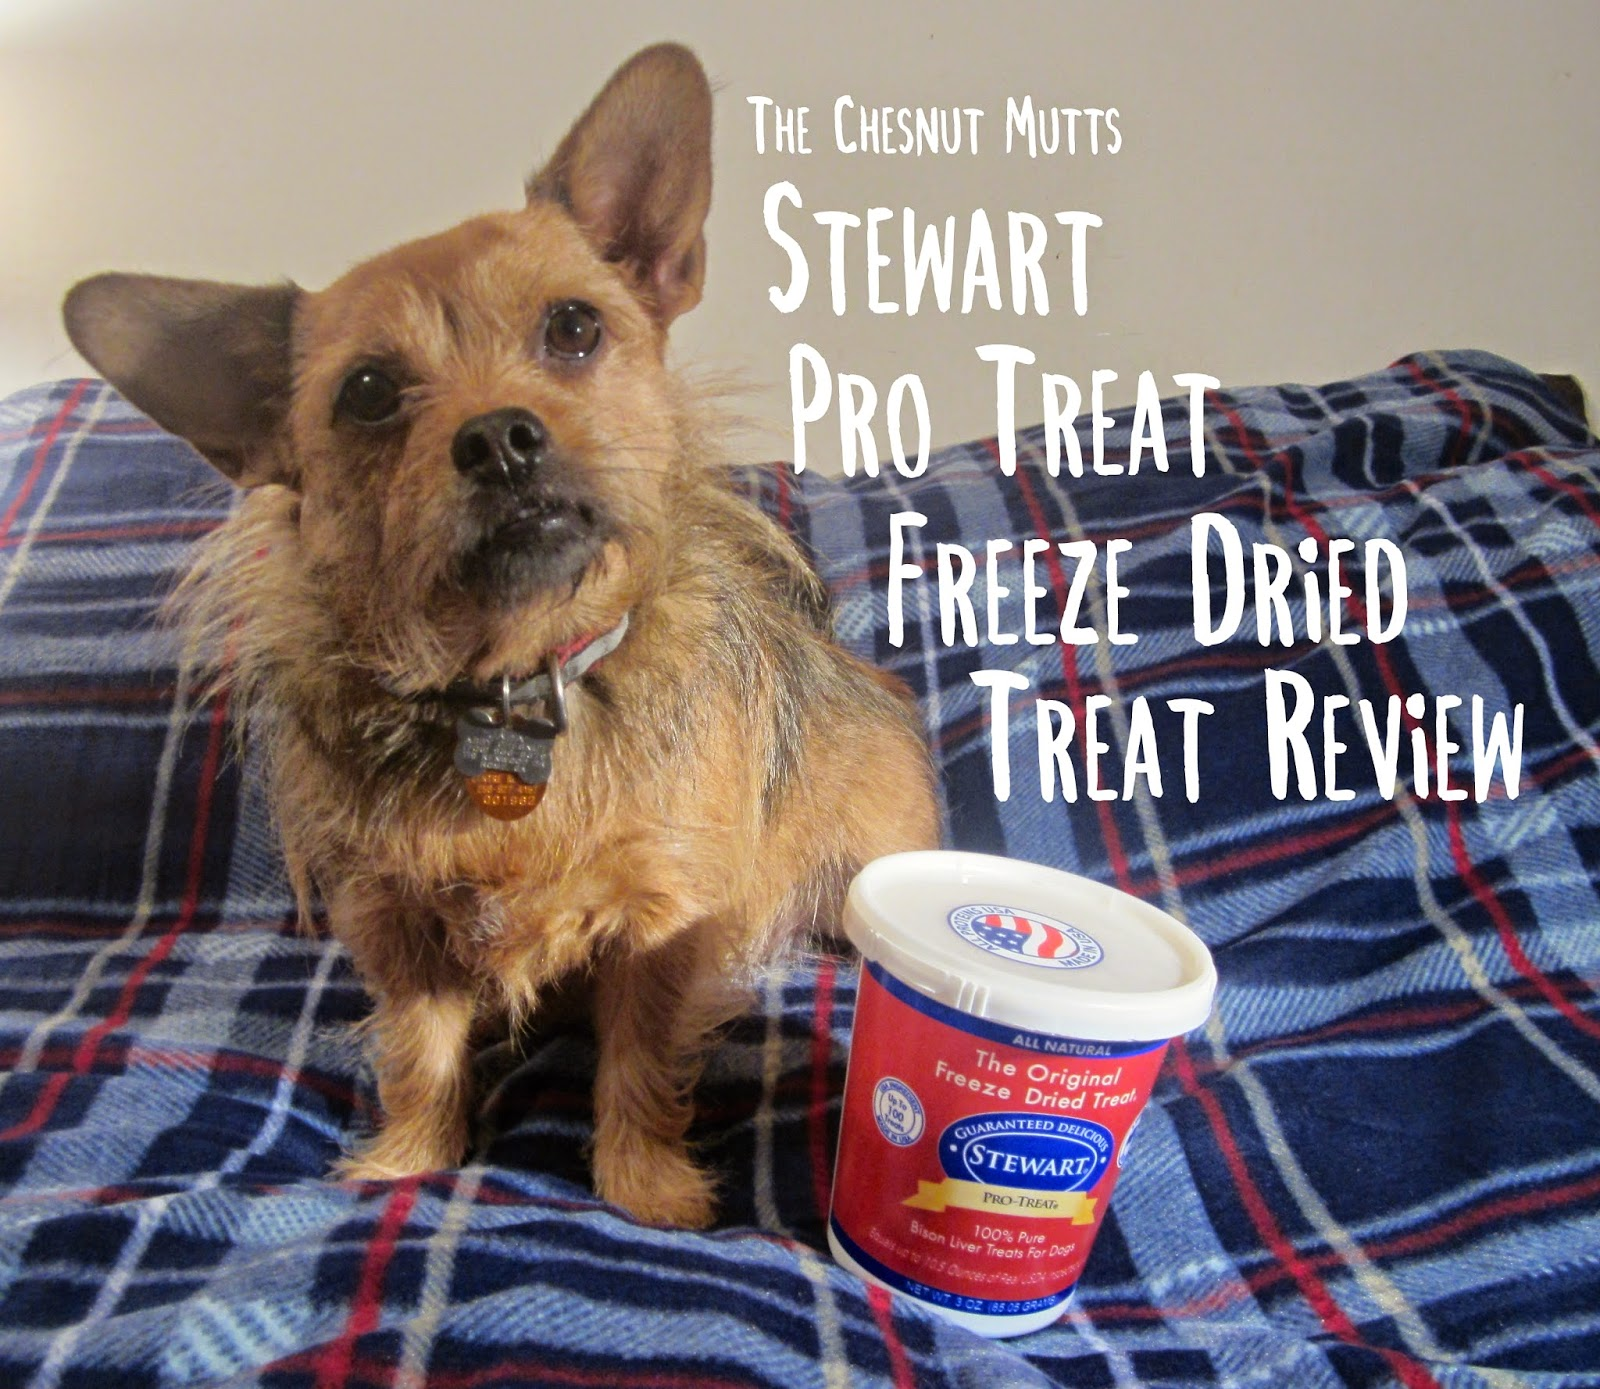 The Chesnut Mutts Stewart Pro-Treat Freeze Dried Dog Treat Review